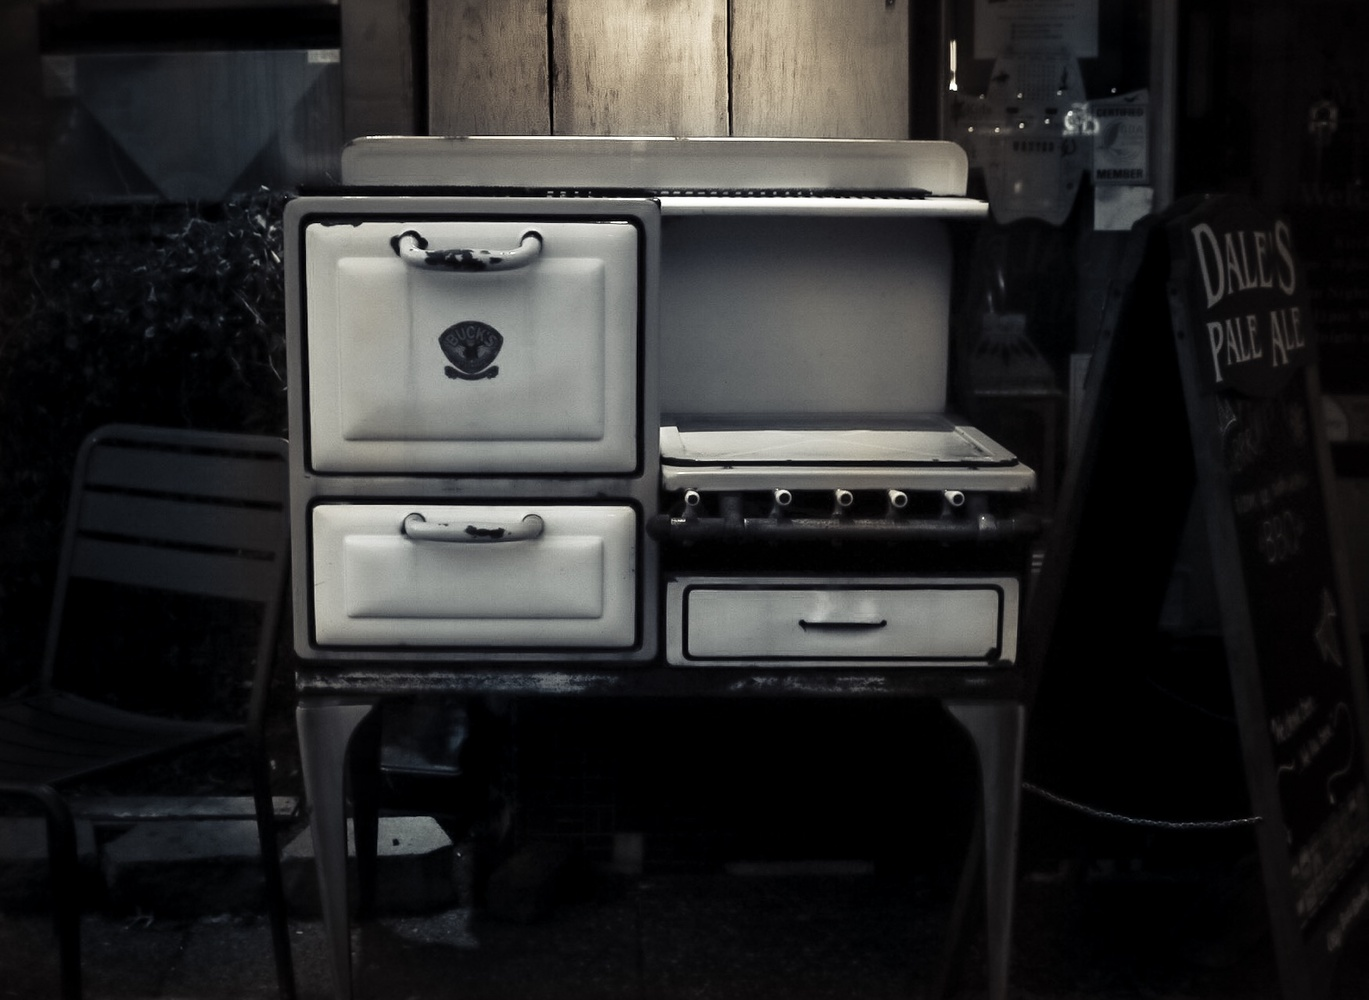 Old stove by Joshua Barclay